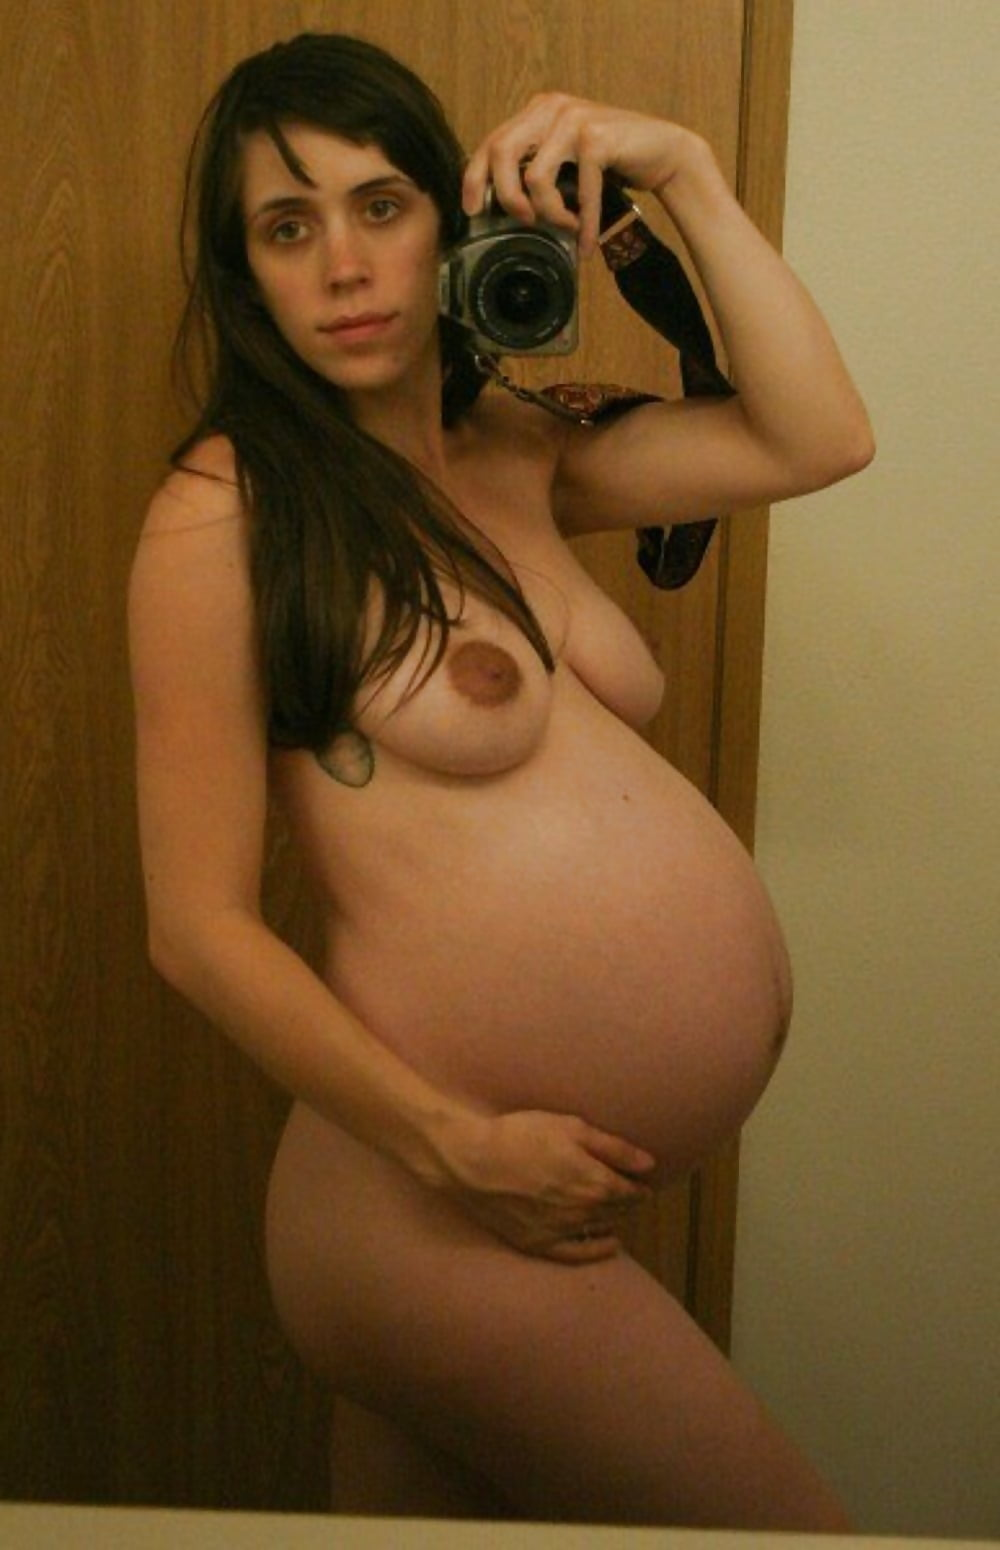 Xxx pregnant girl self shot nude